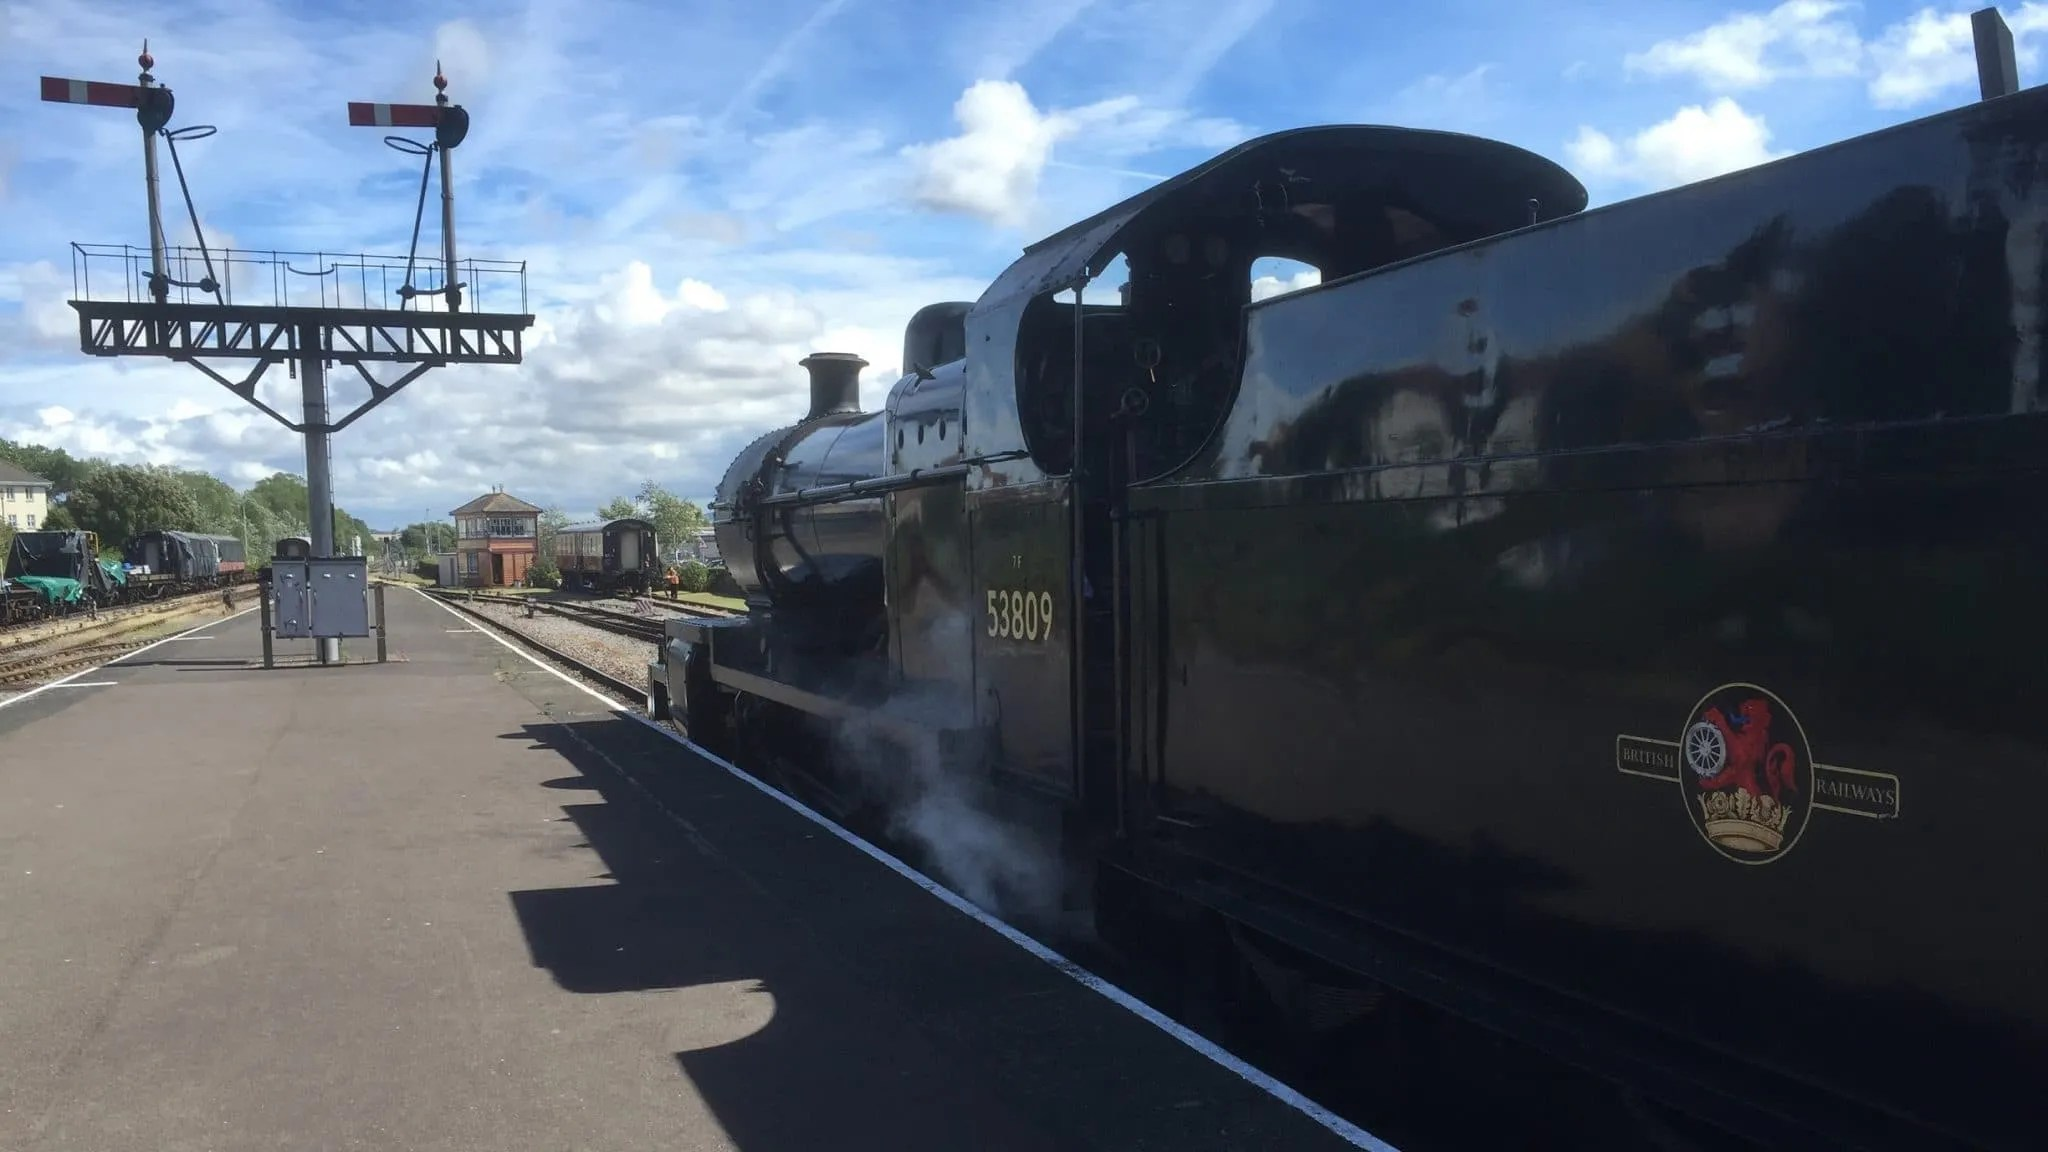 53809 prepares for departure from Minehead on the West Somerset Railway